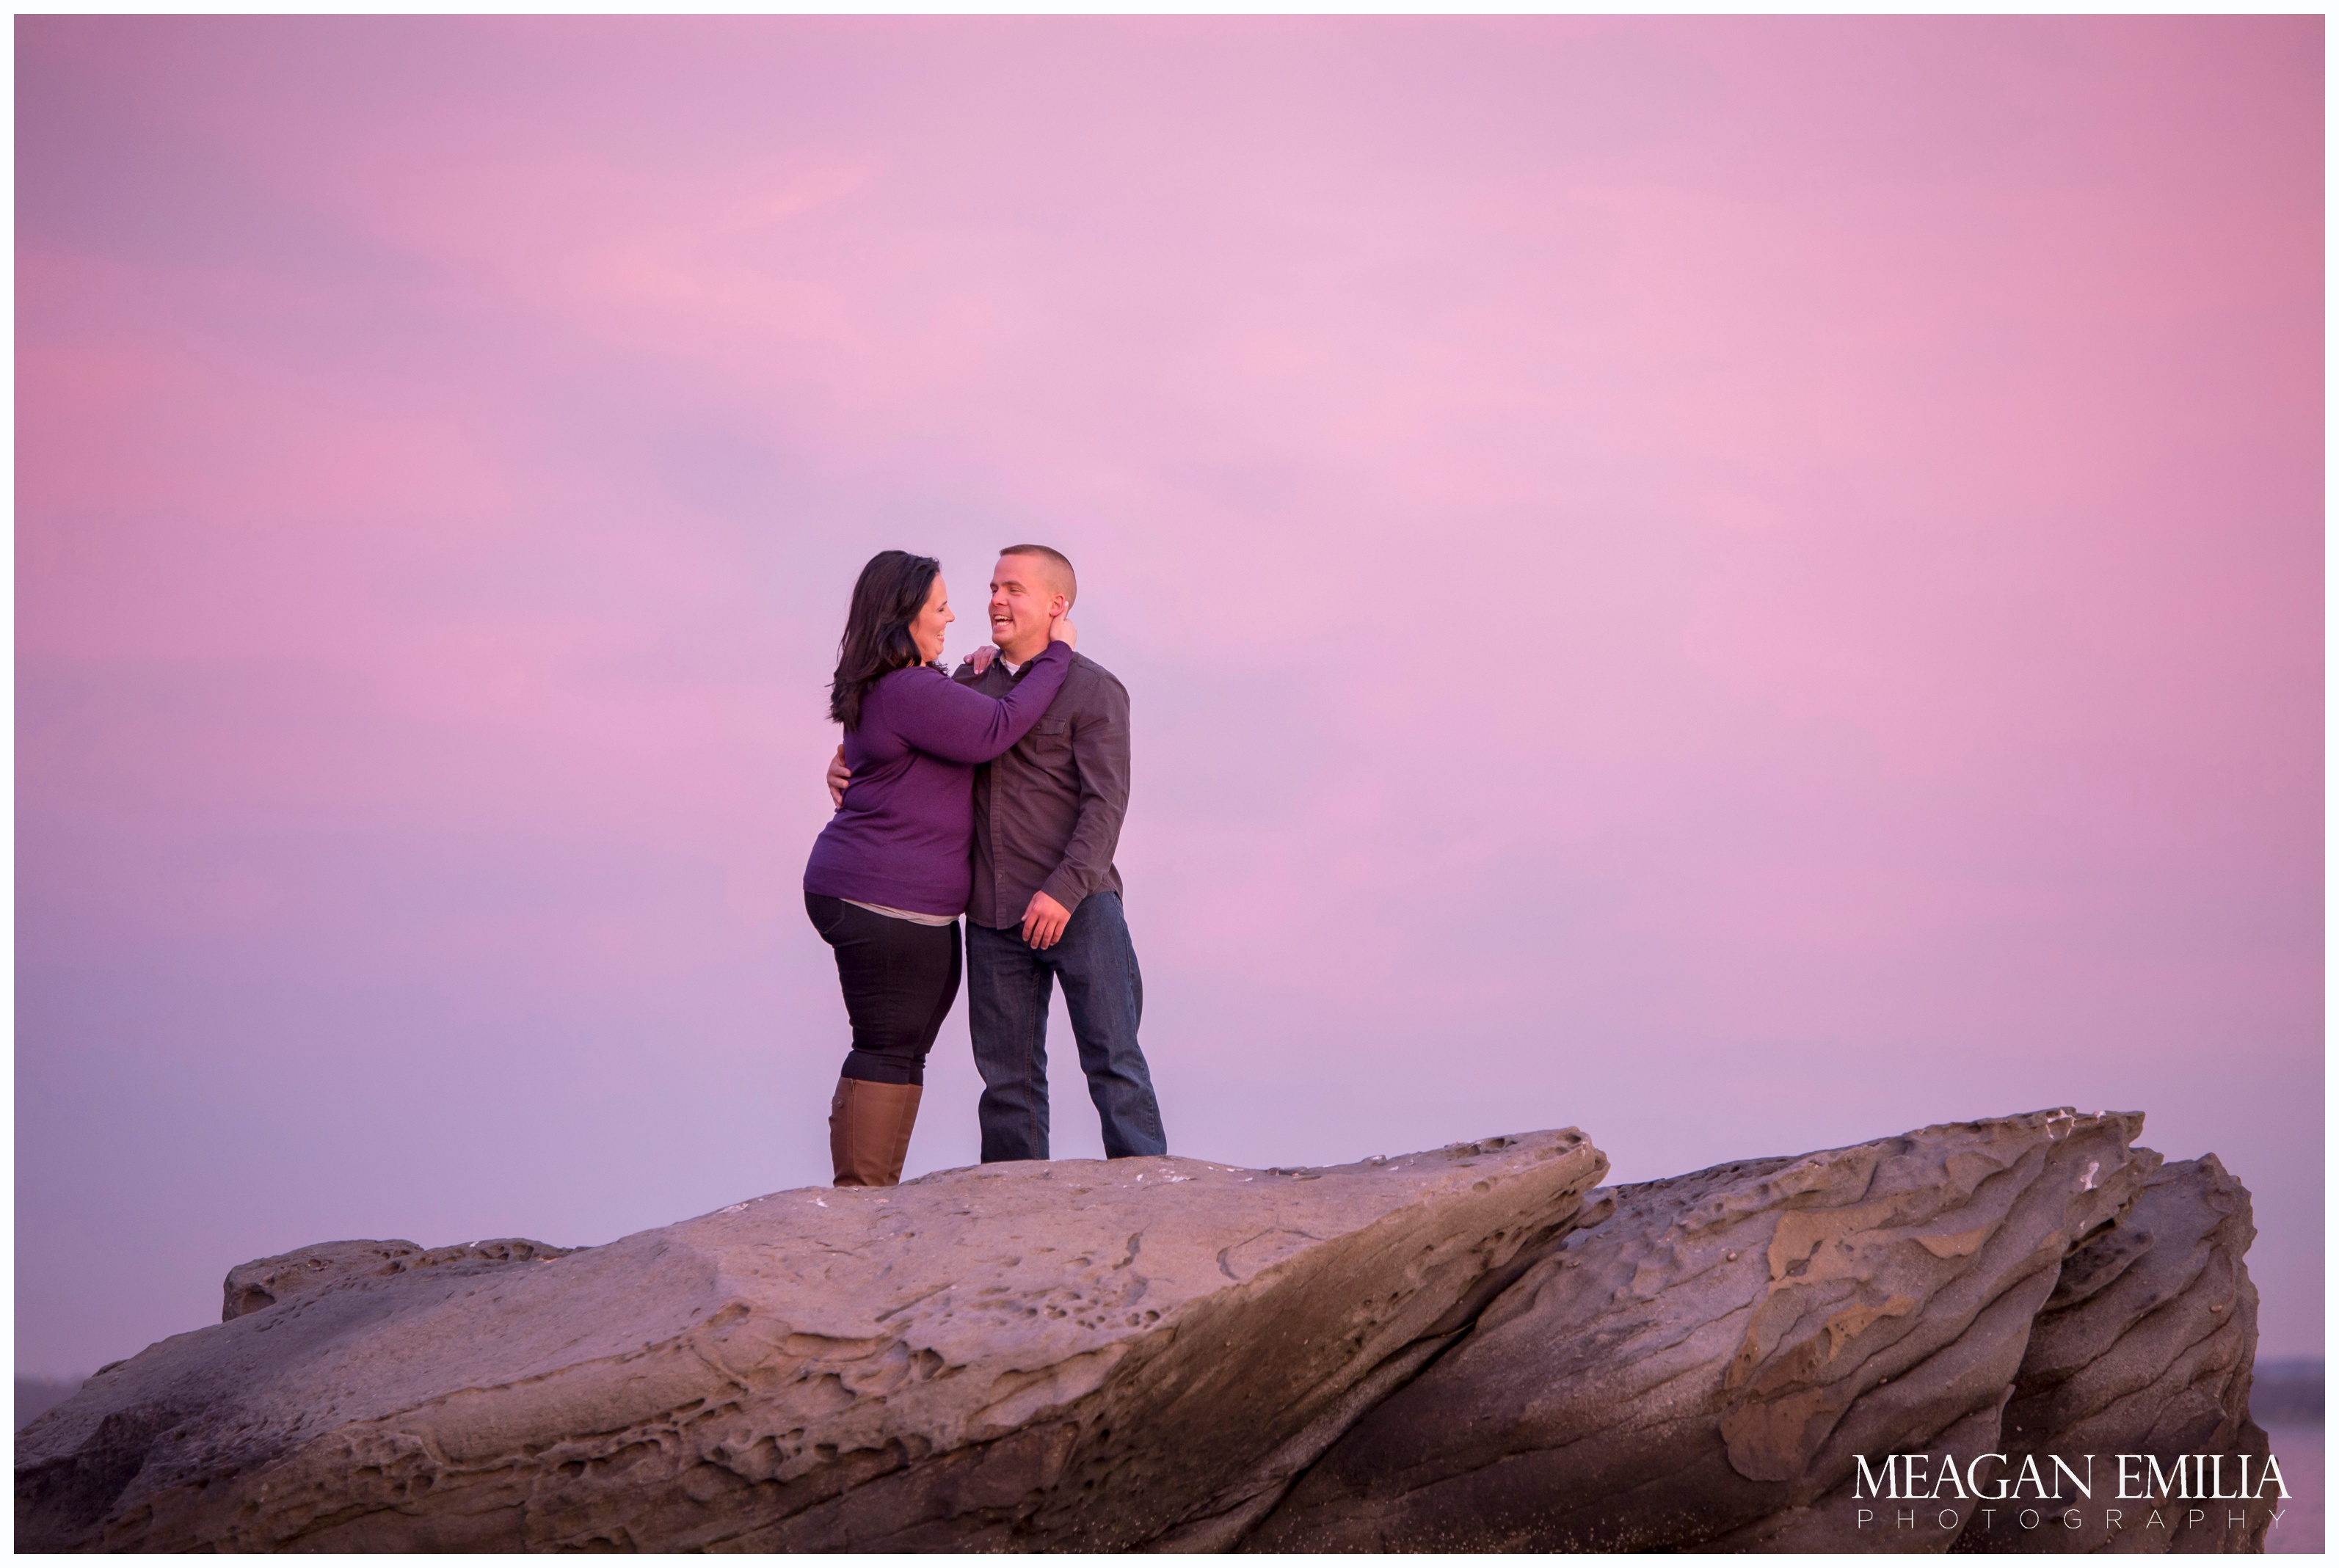 Danielle & Greg engagement photos at Rocky Point State Park in Warwick, RI.